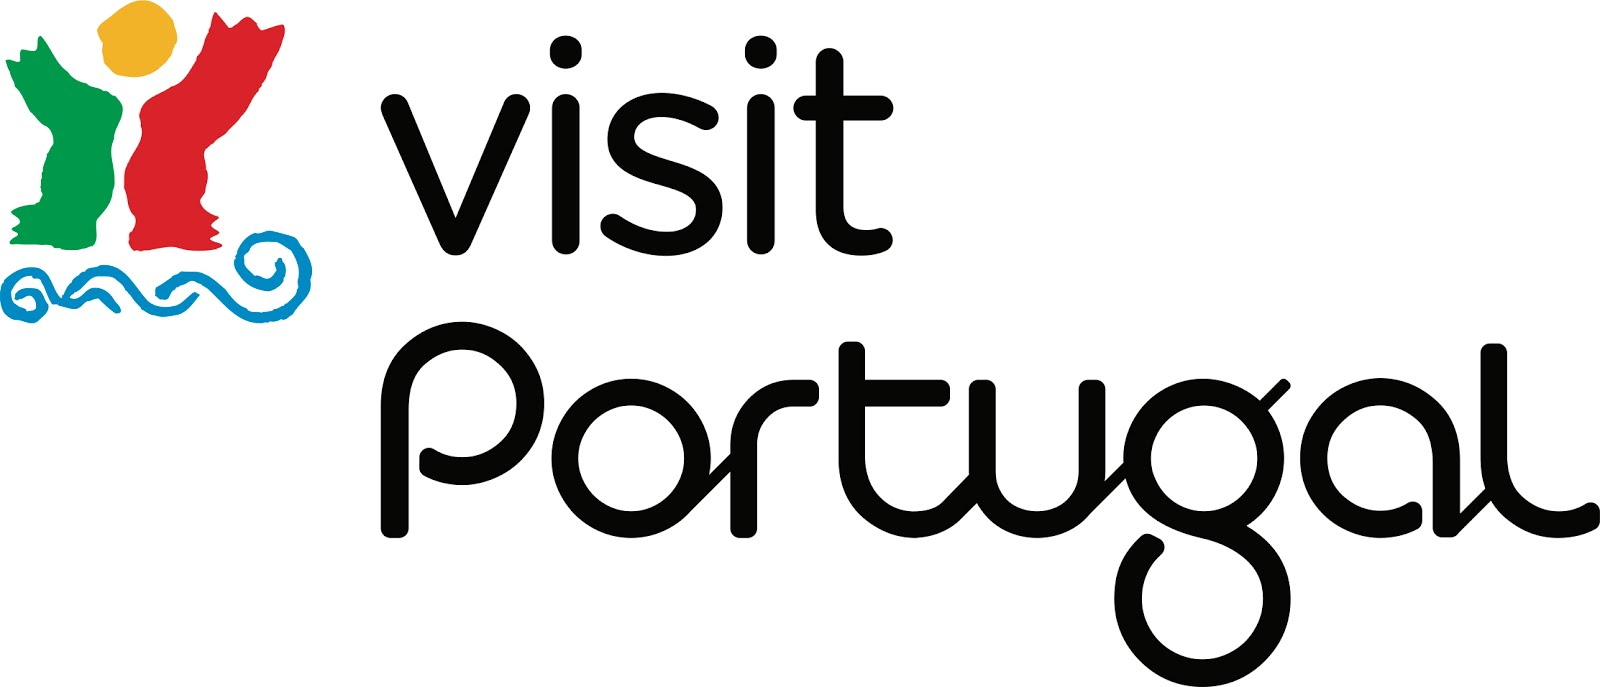 Official Portuguese tourism agency